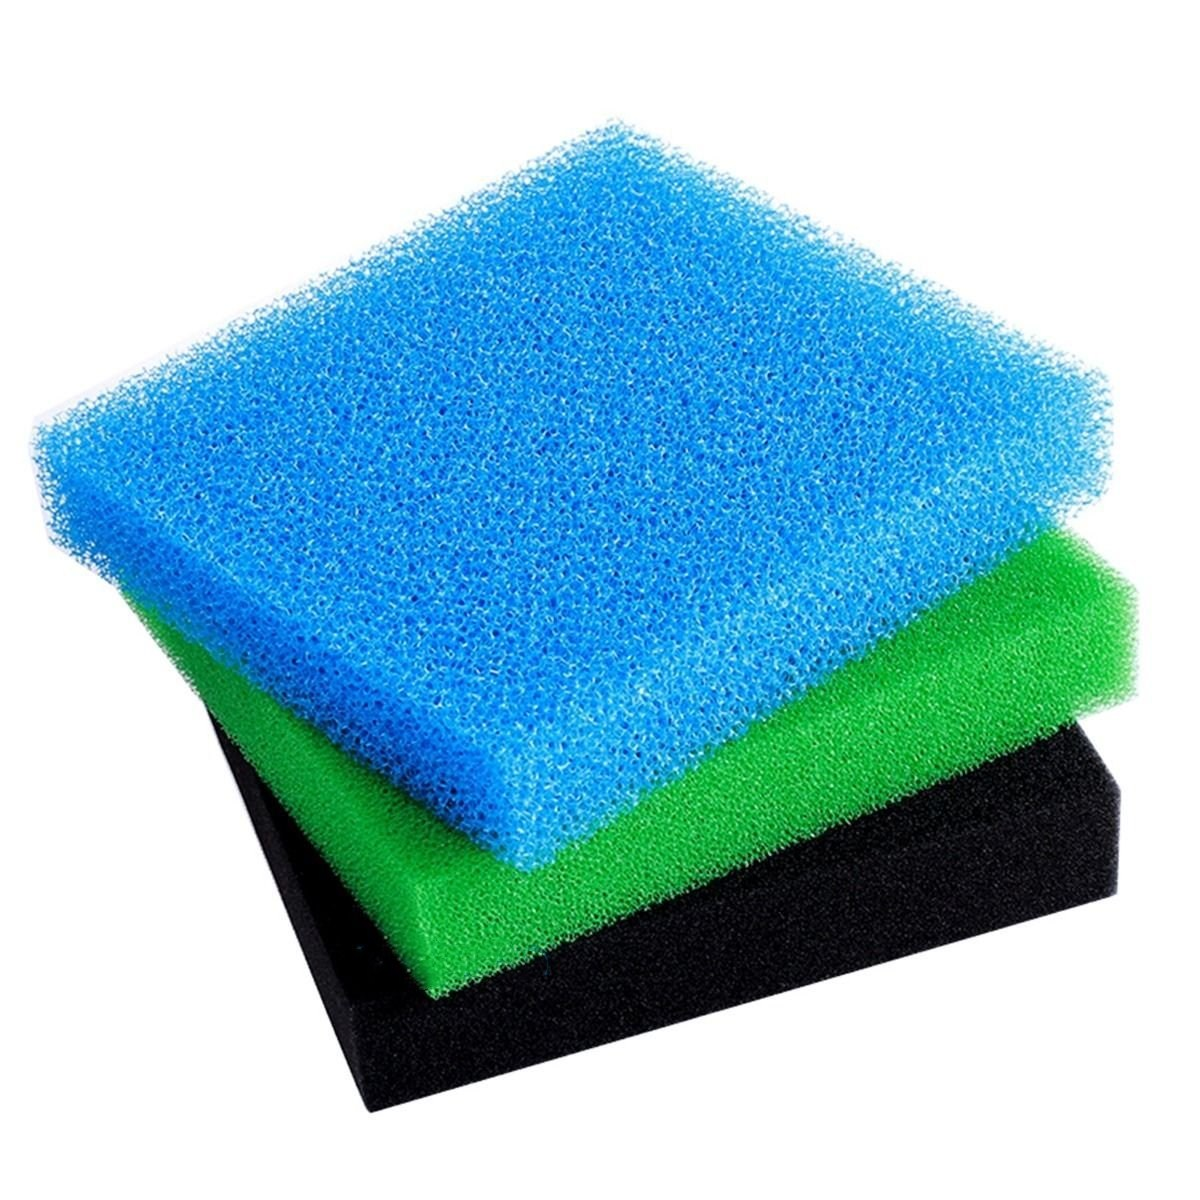 Reticulated Filter Sponge